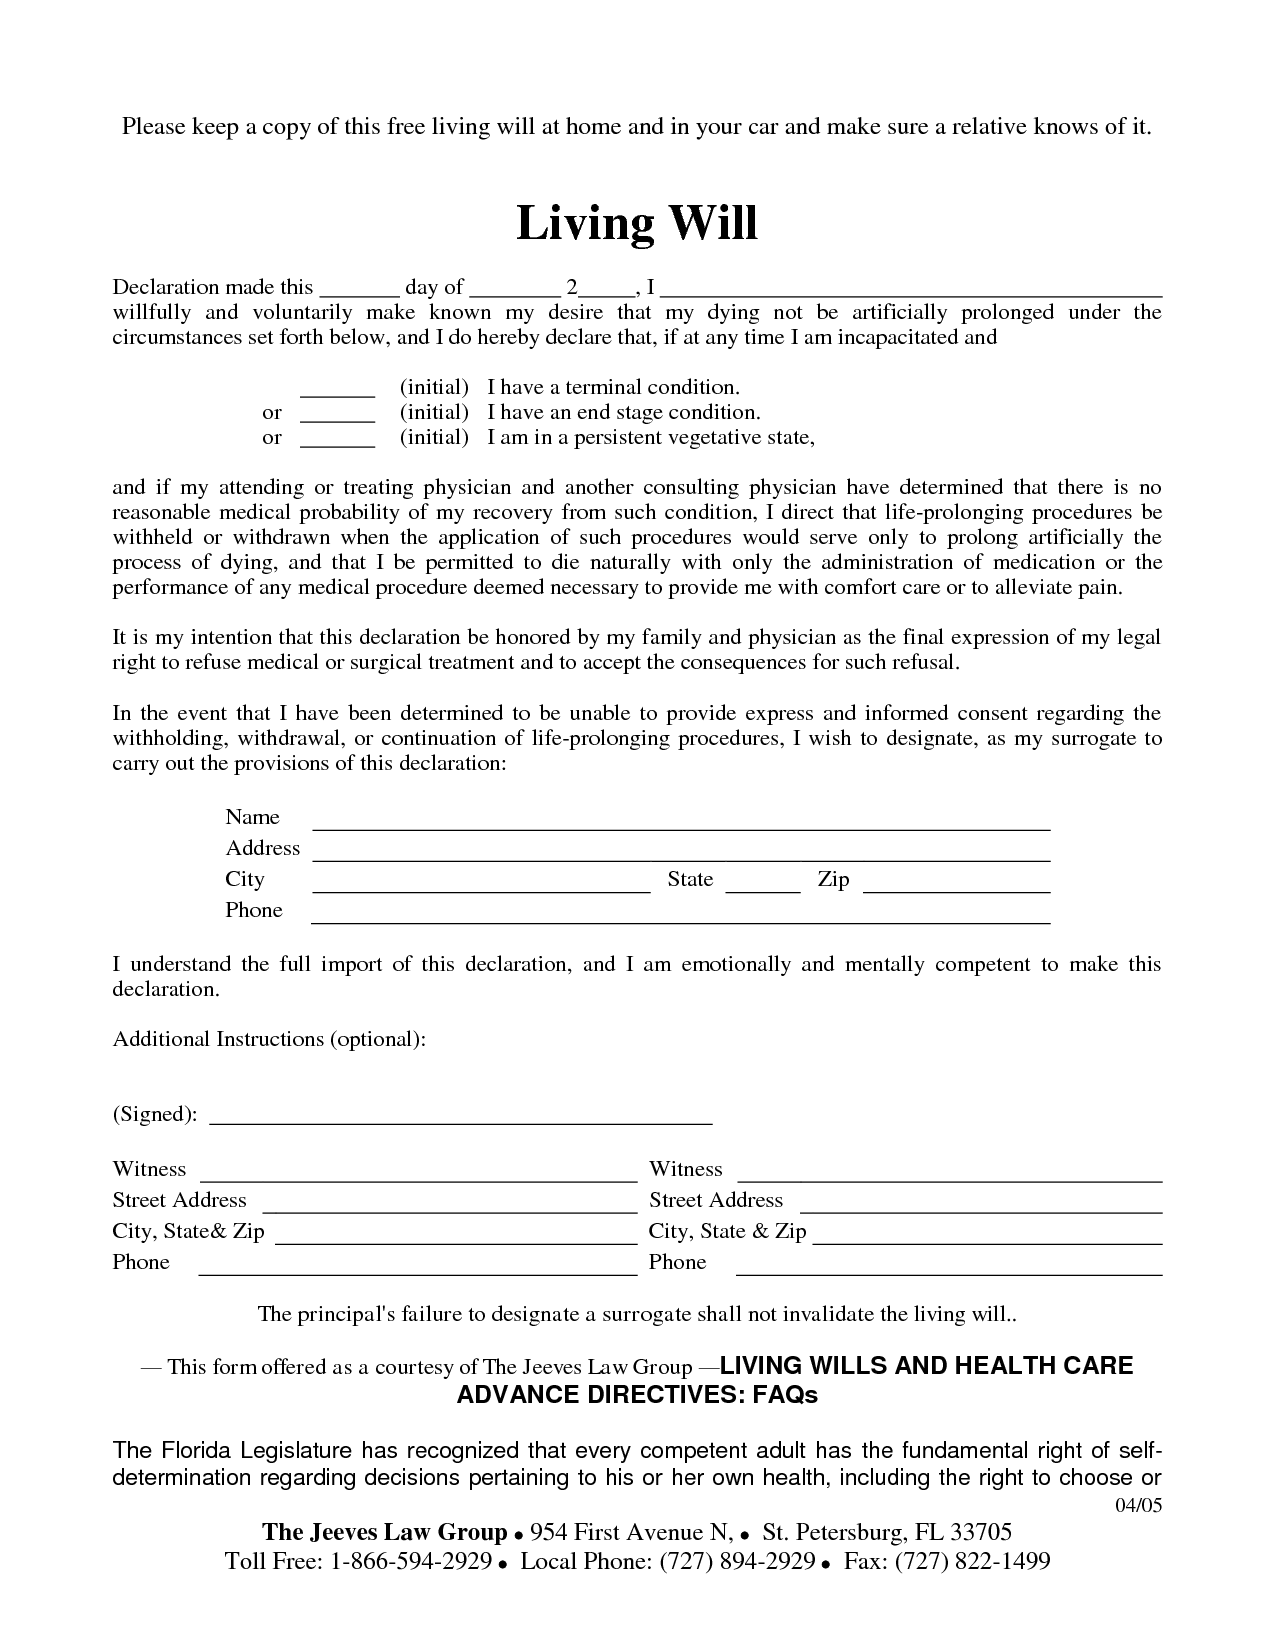 Free Copy of Living Will by Richard_Cataman - living will sample ...